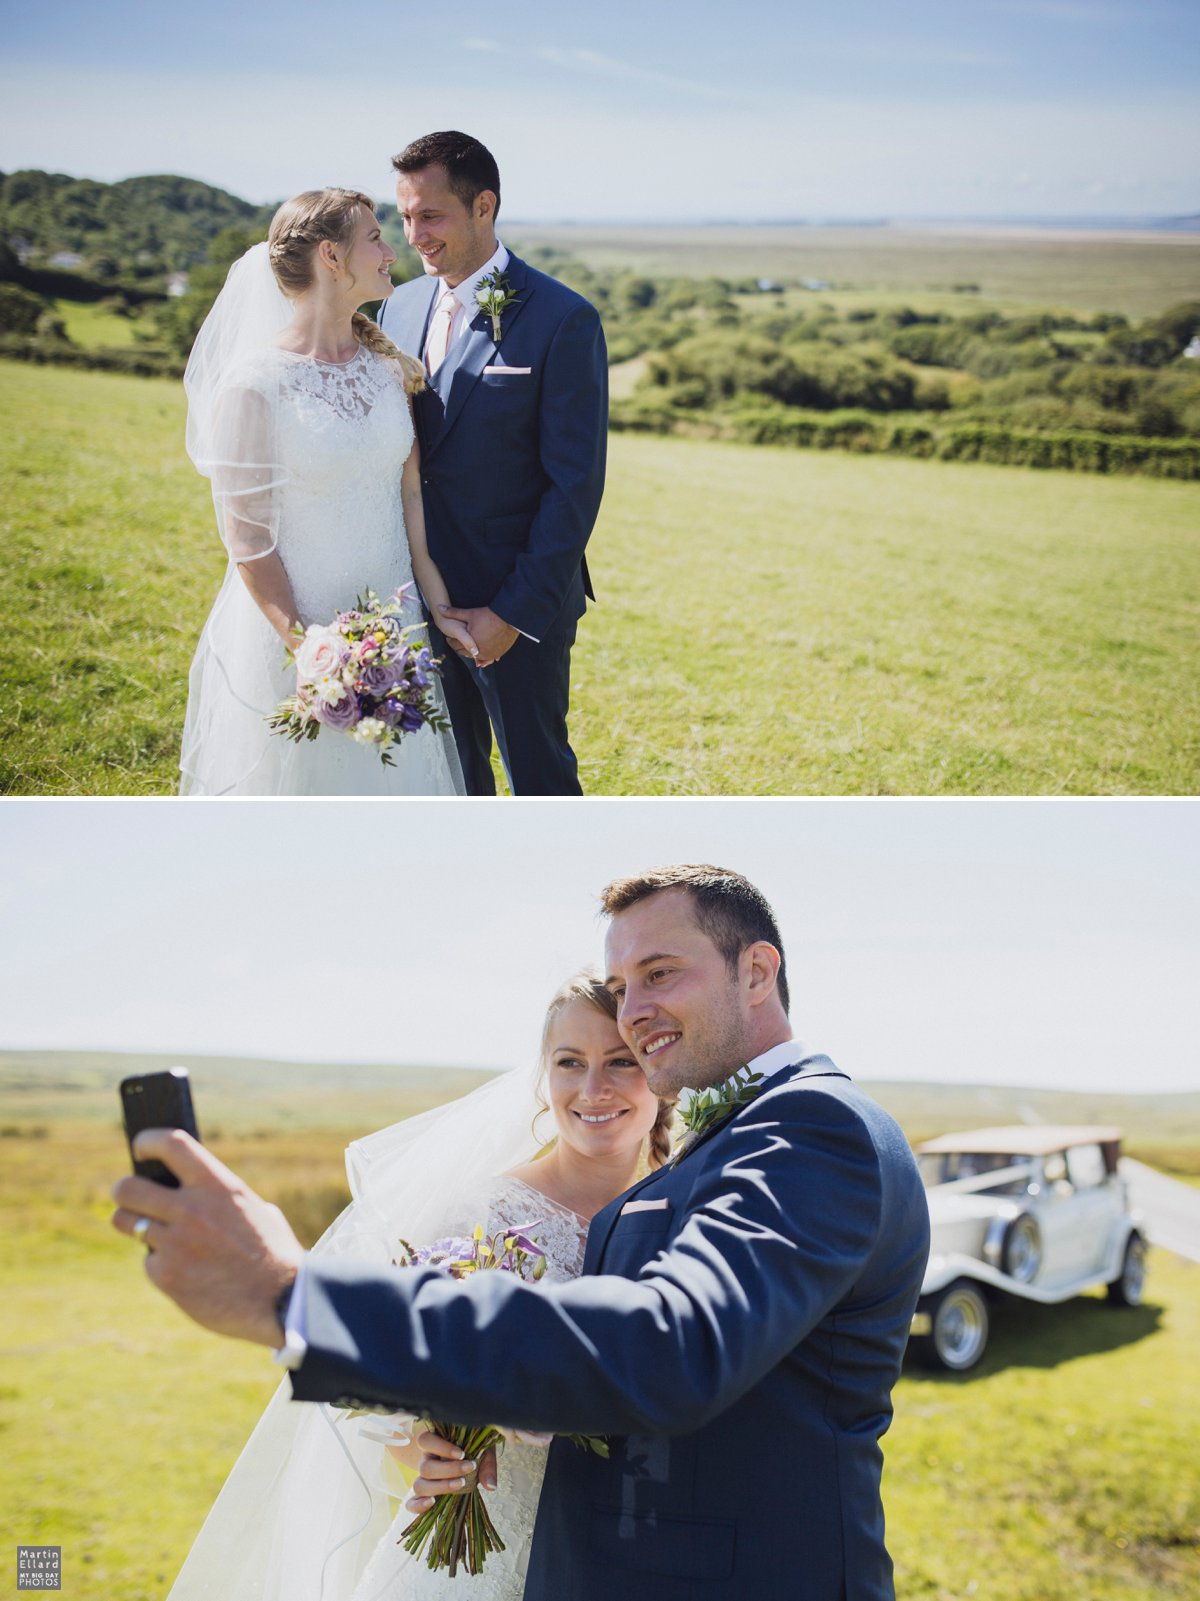 South Wales wedding photographer King Arthur Hotel weddings Gower Swansea Cardiff UK